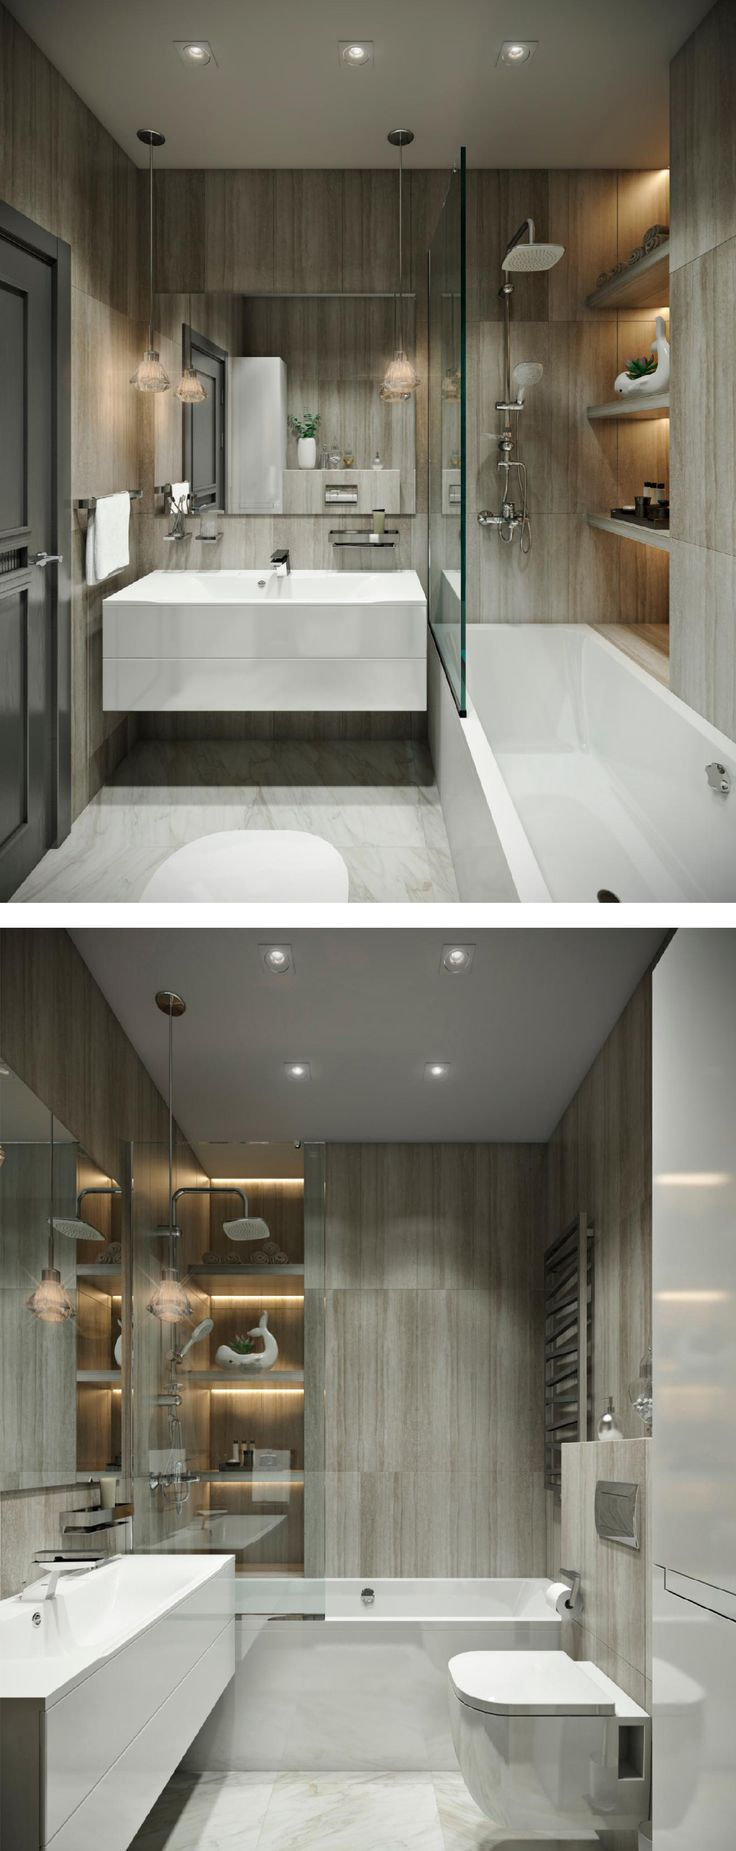 Modern American Style Bathroom By Olga Osadchaya Interior Design Course Student In European School Kiev Ukraine